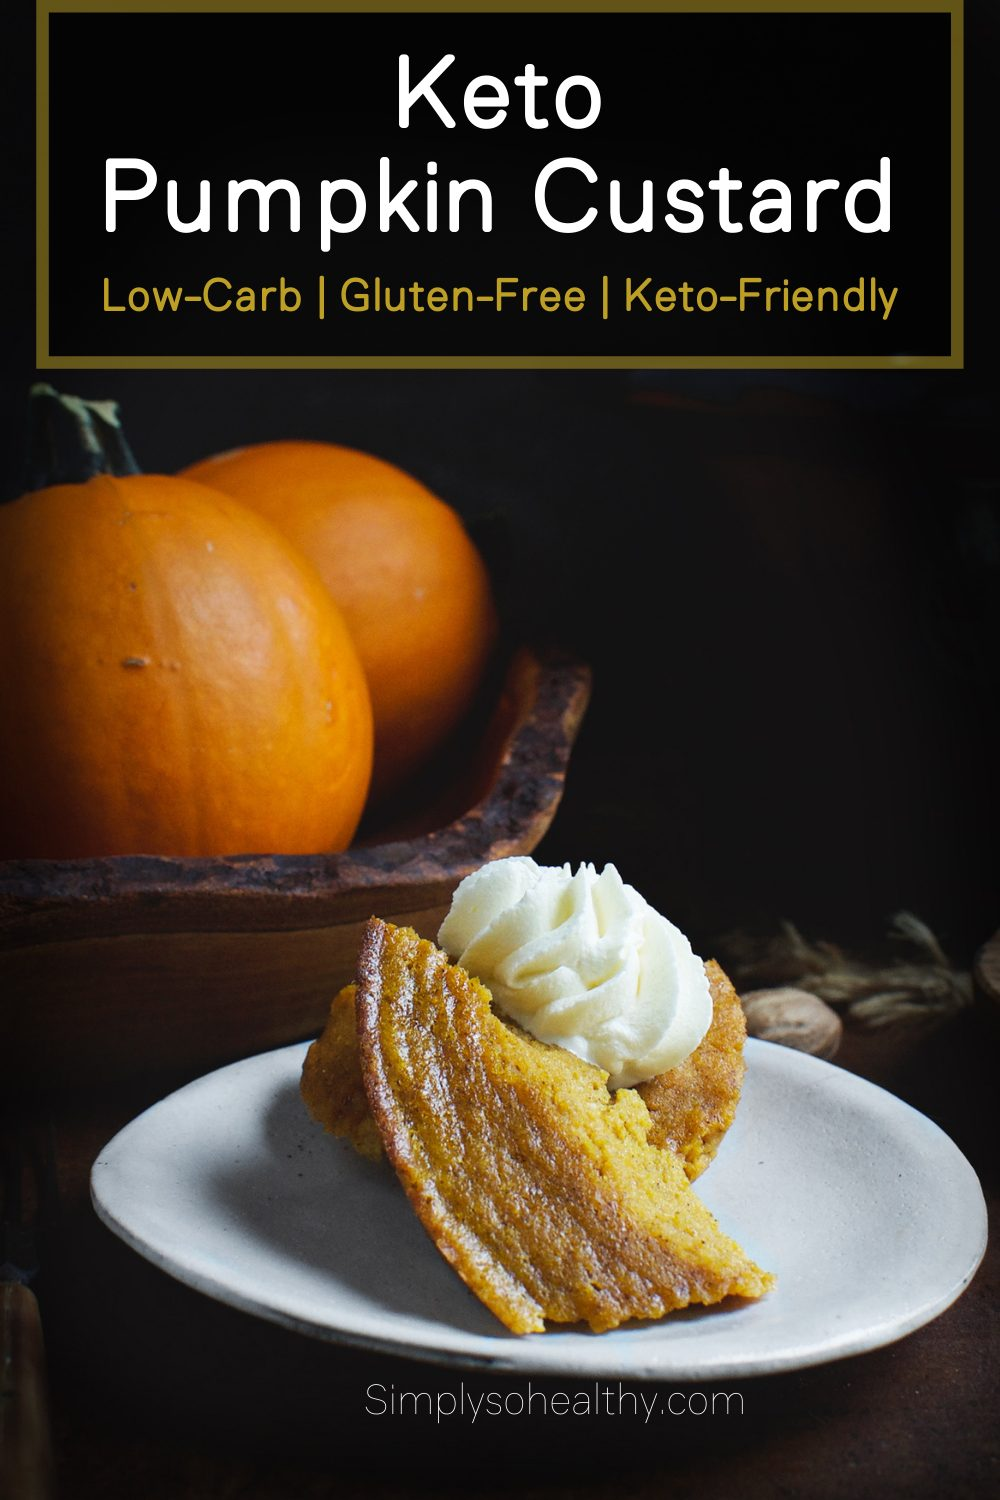 Pin Image for Pumpkin Custard.